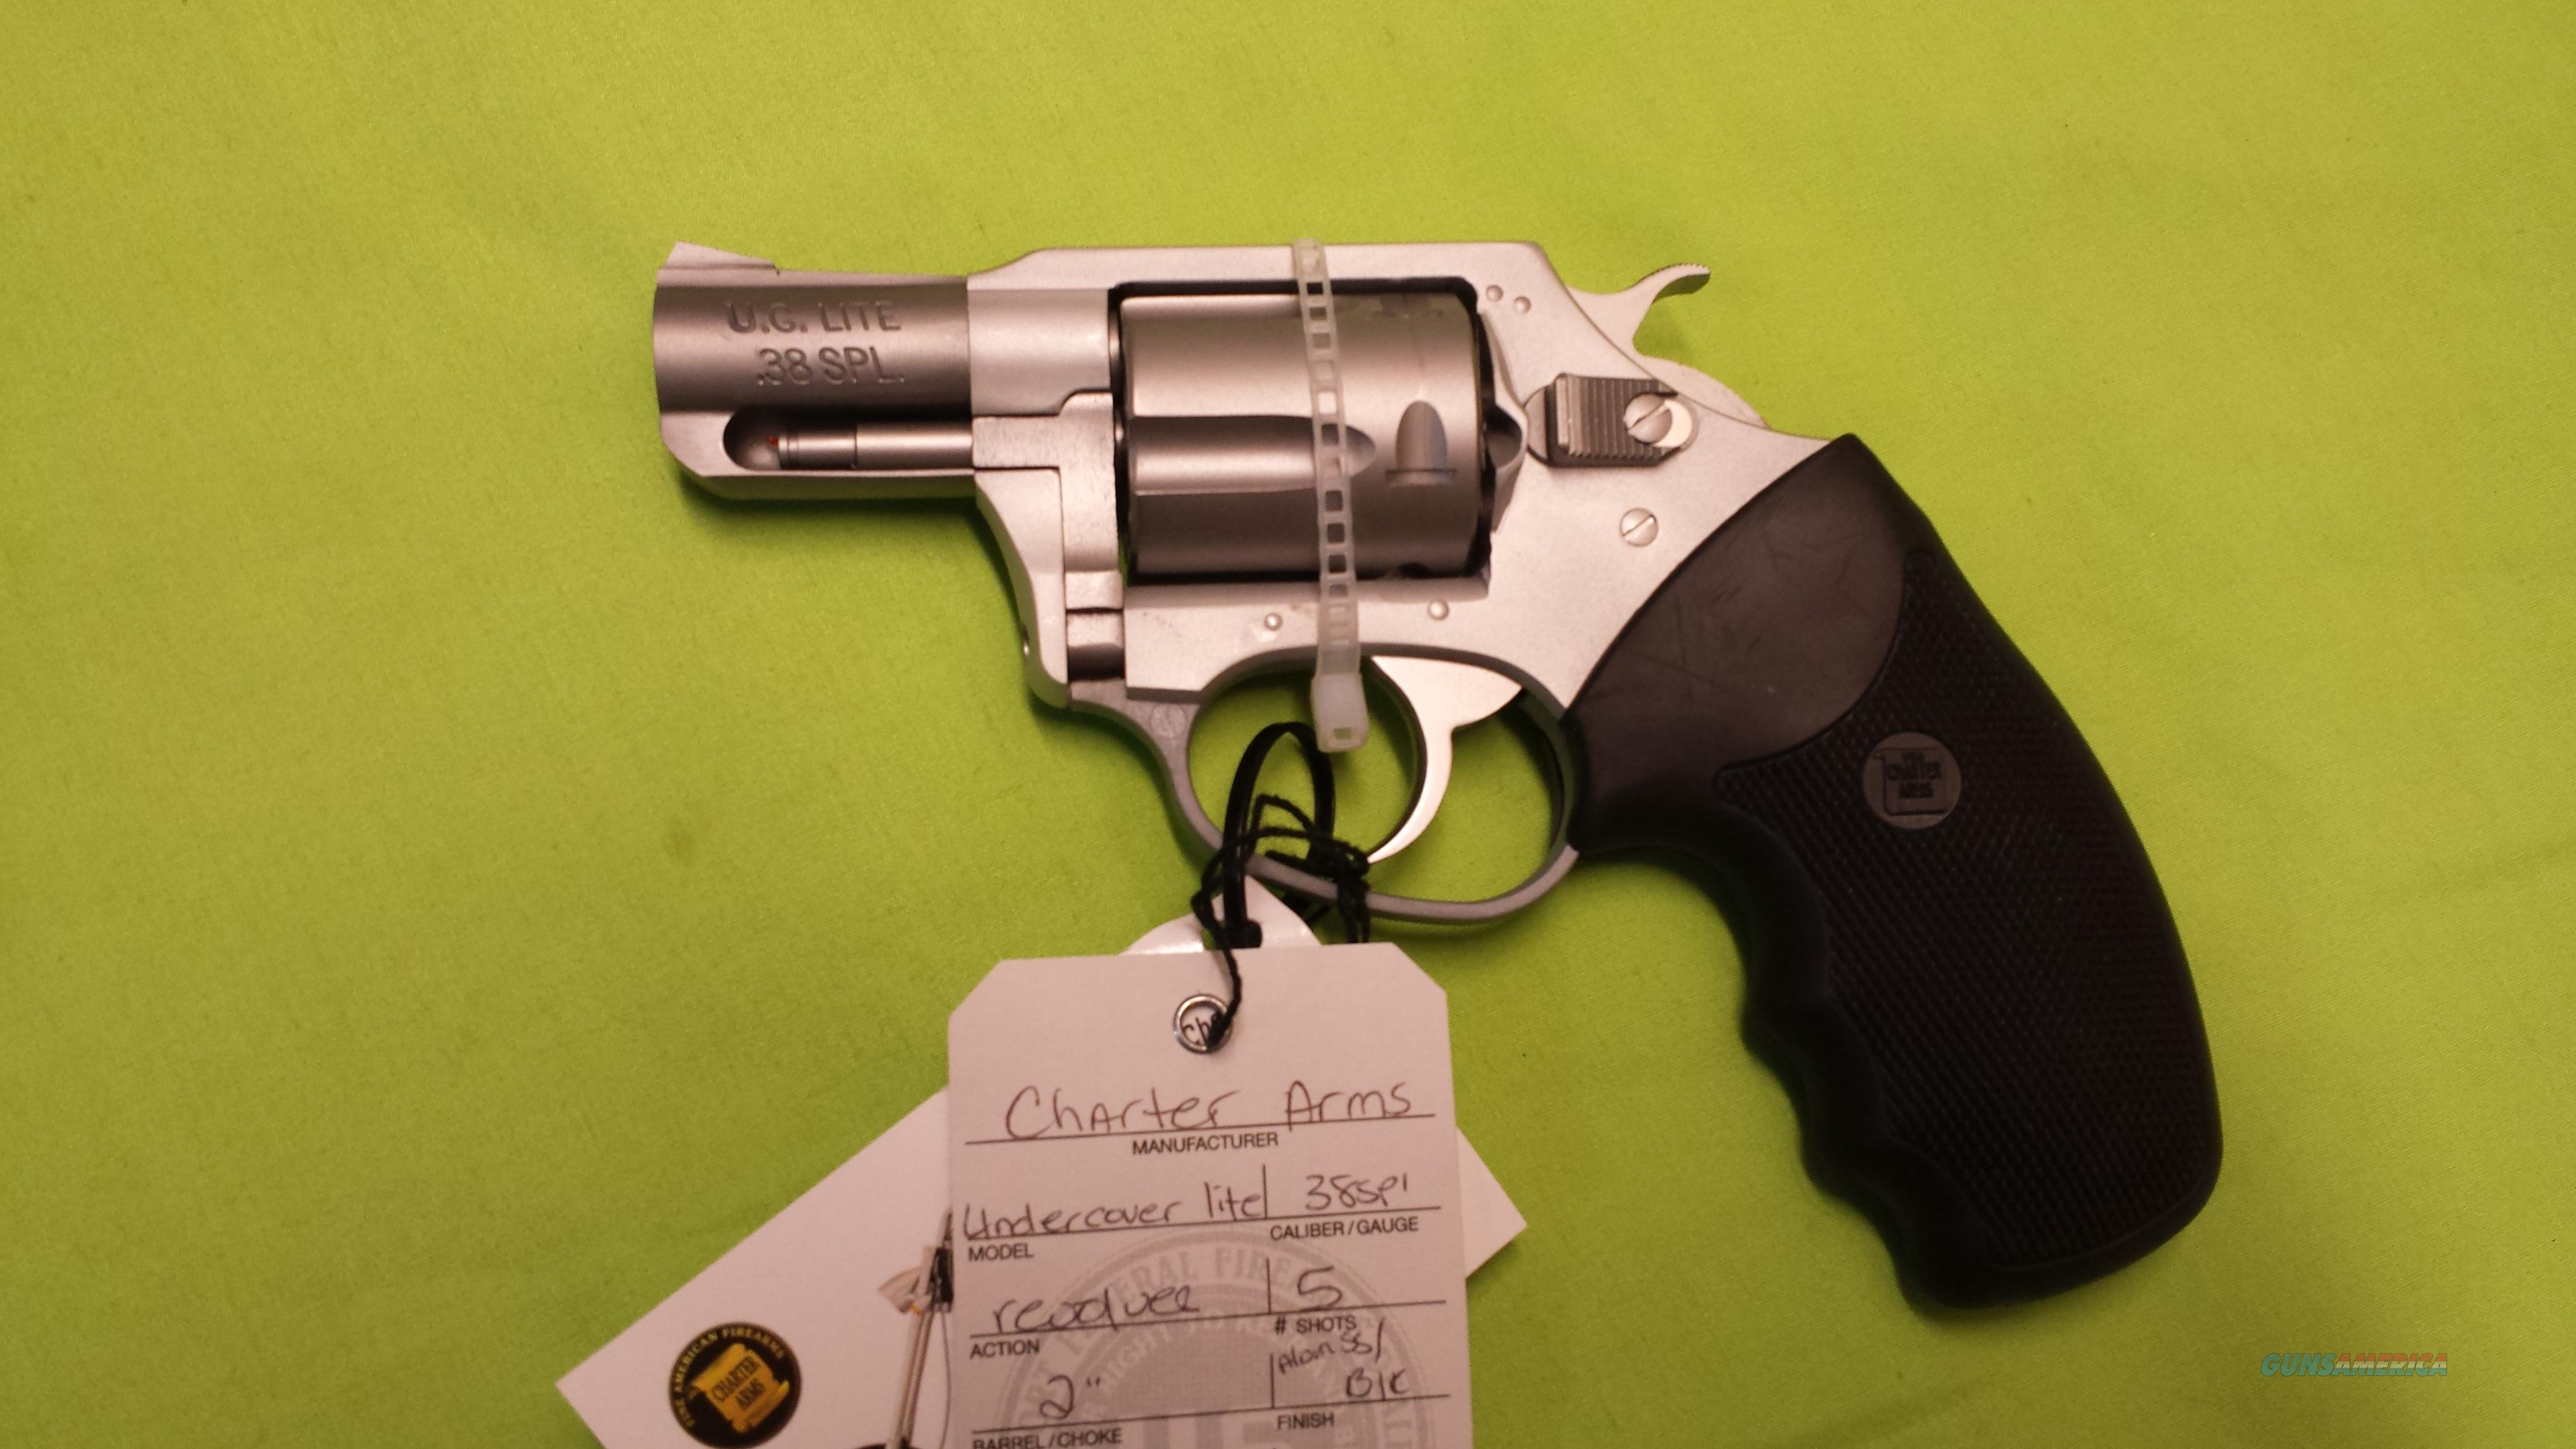 "CHARTER ARMS UNDERCOVER LITE .38 38 SPL 2"" REVOLVER  Guns > Pistols > Charter Arms Revolvers"